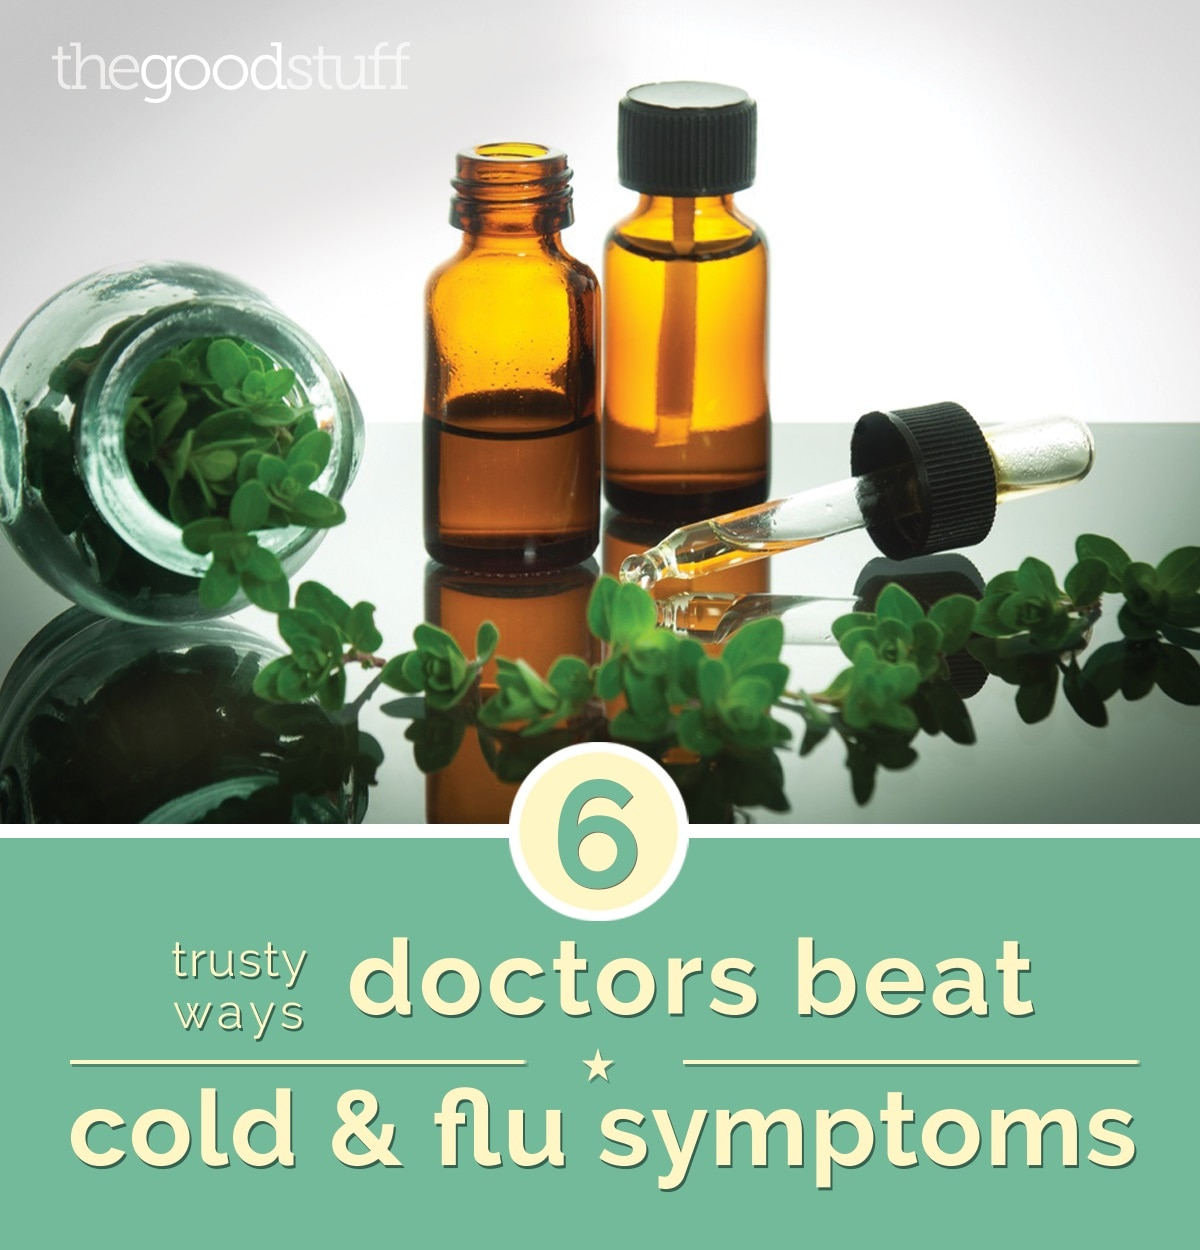 life-doctors-beat-cold-and-flu-symptoms